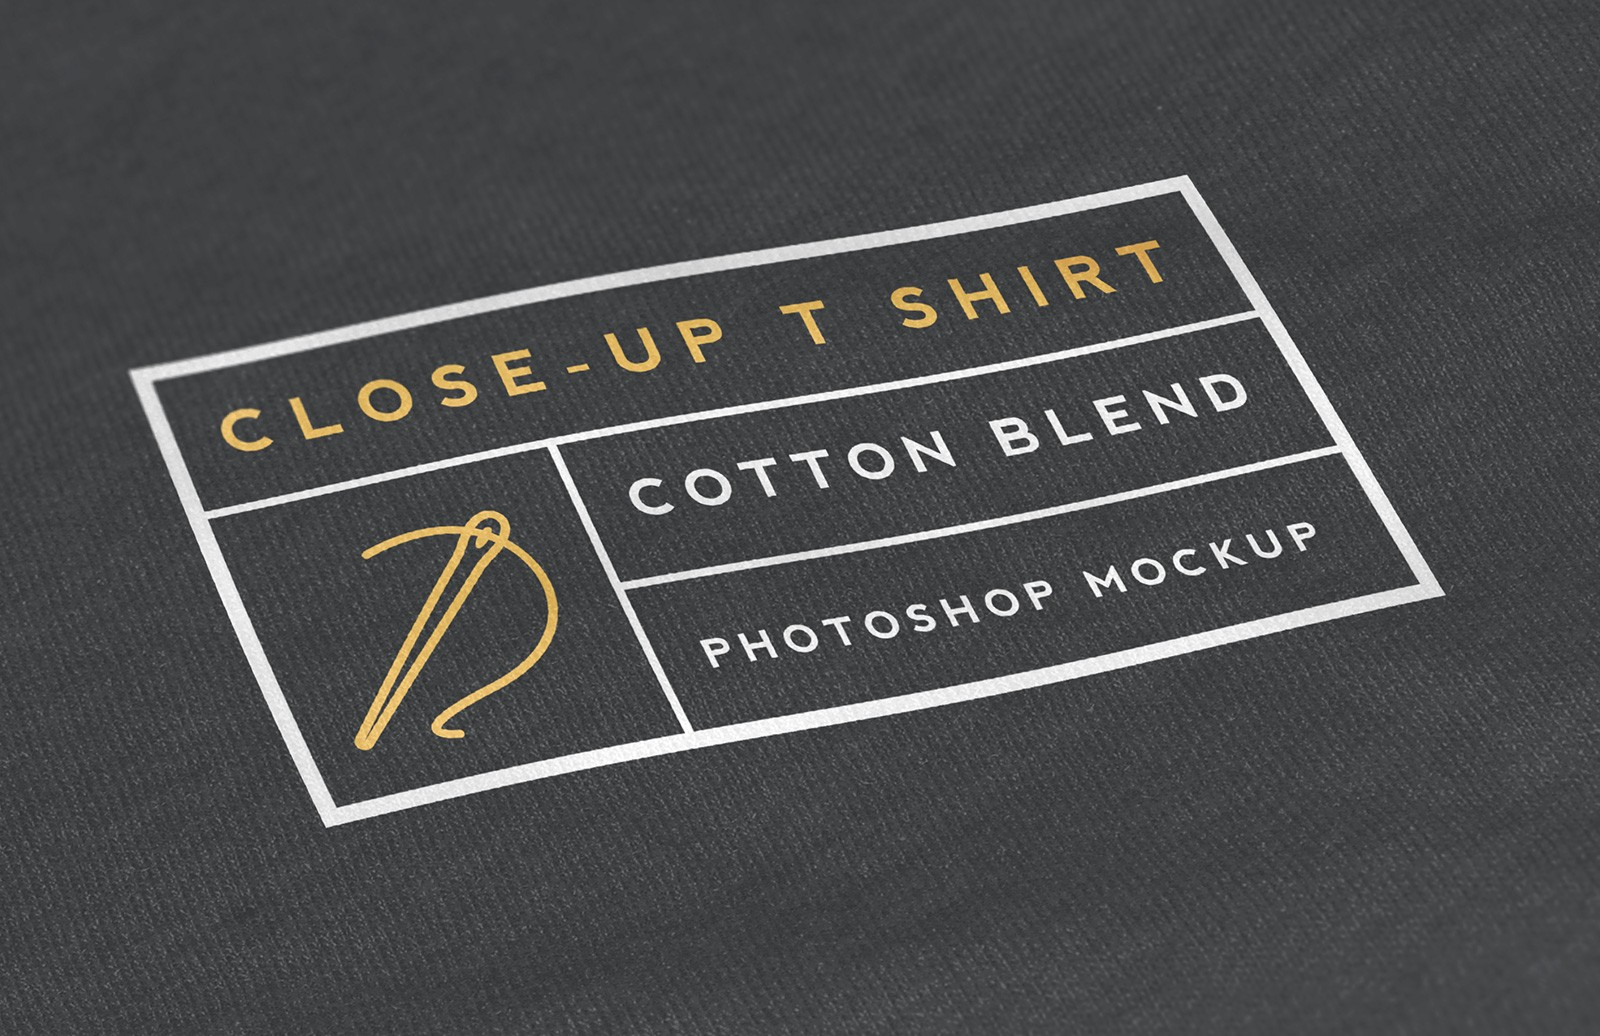 Close-Up T Shirt Mockup